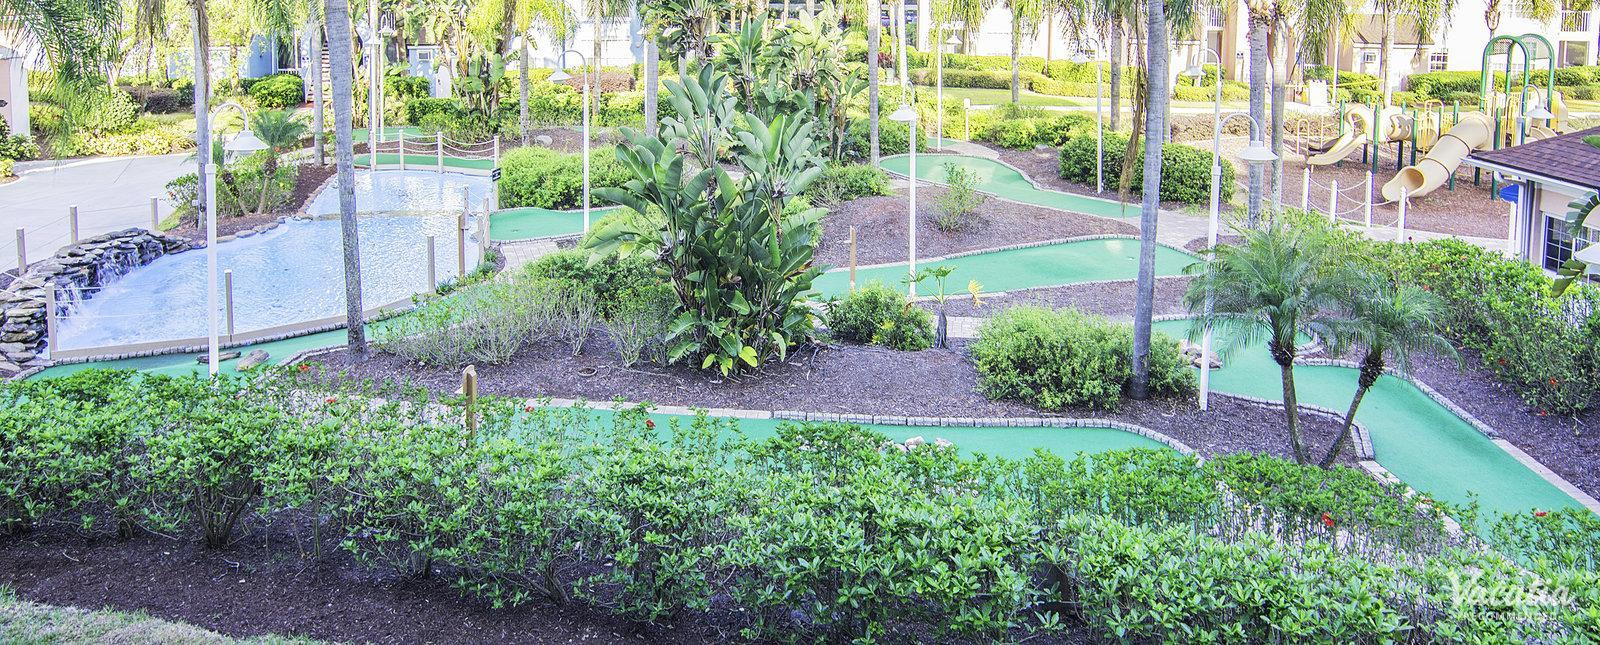 Grande Villas Resort minigolf course for families